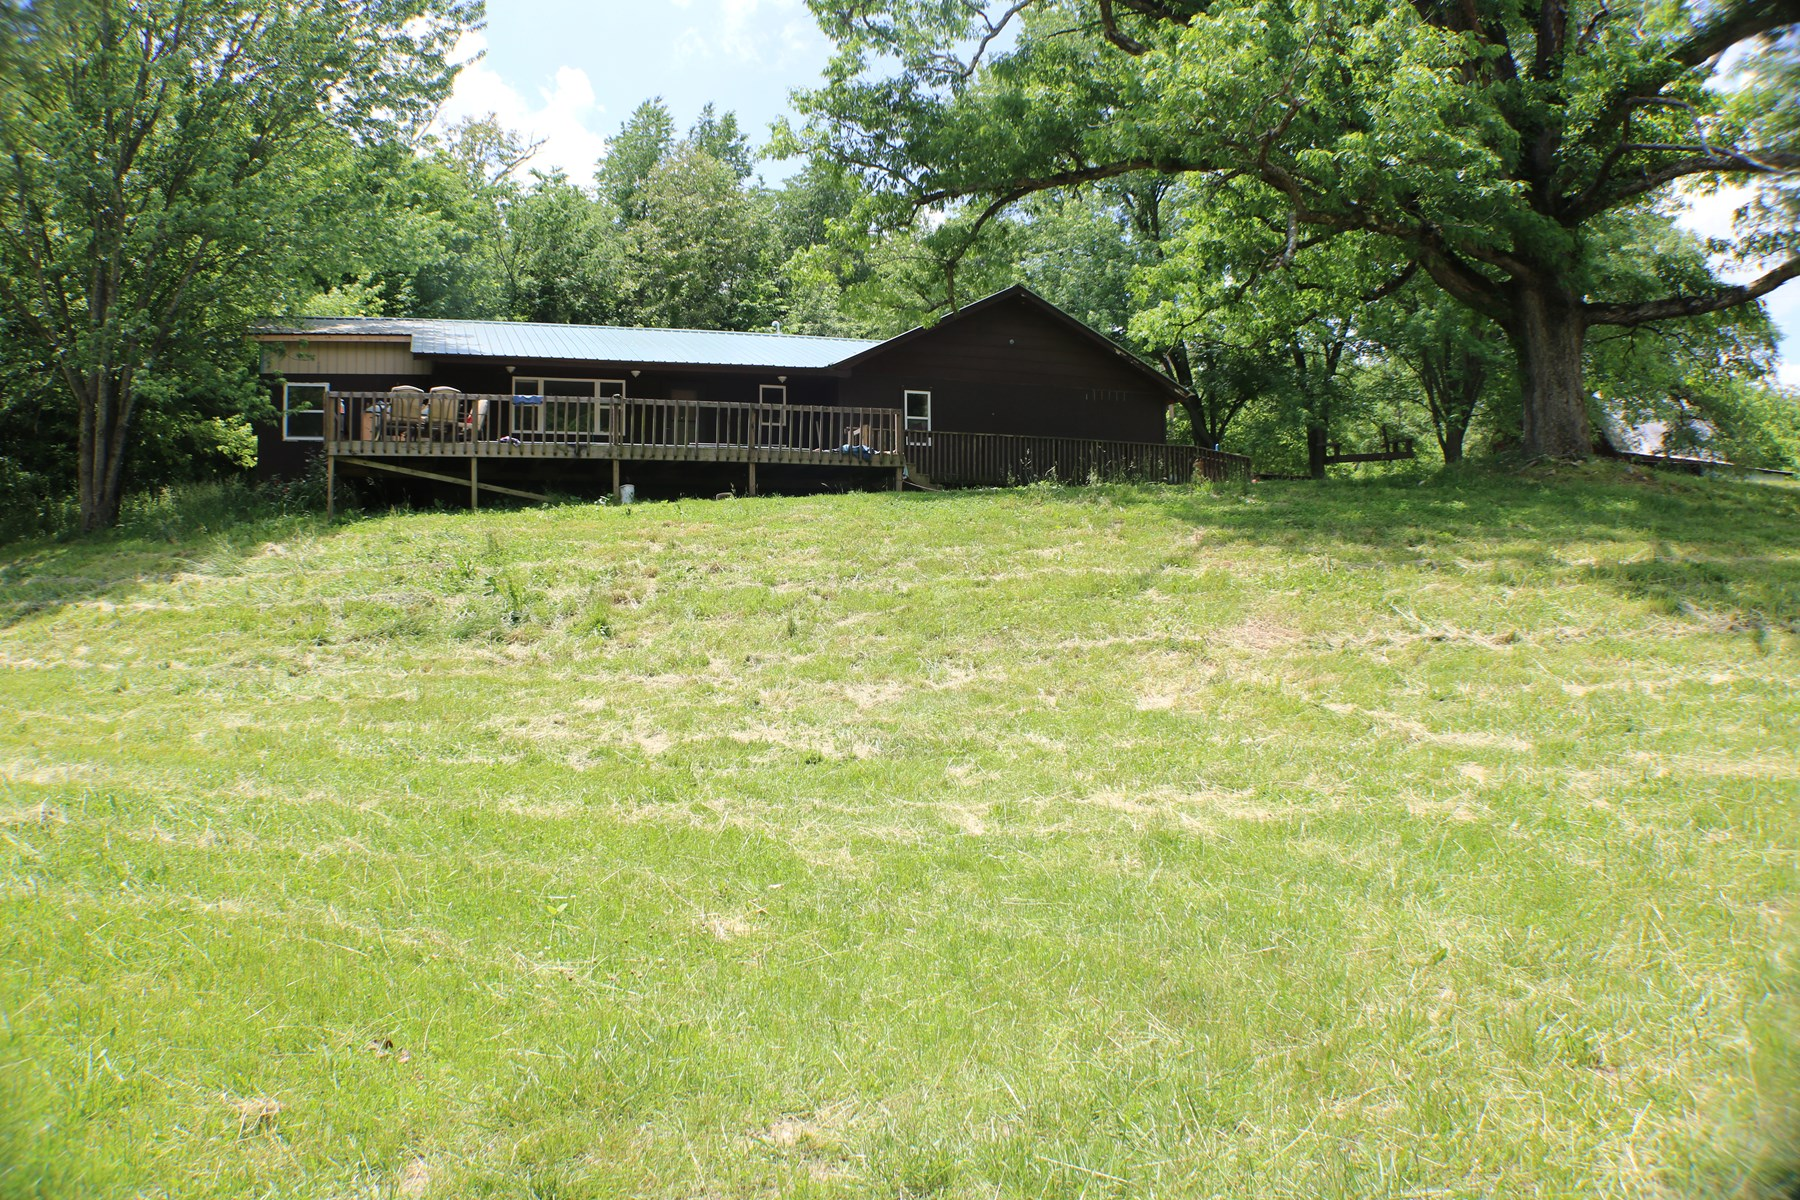 Home for sale, Ava Mo, Large home with acreage